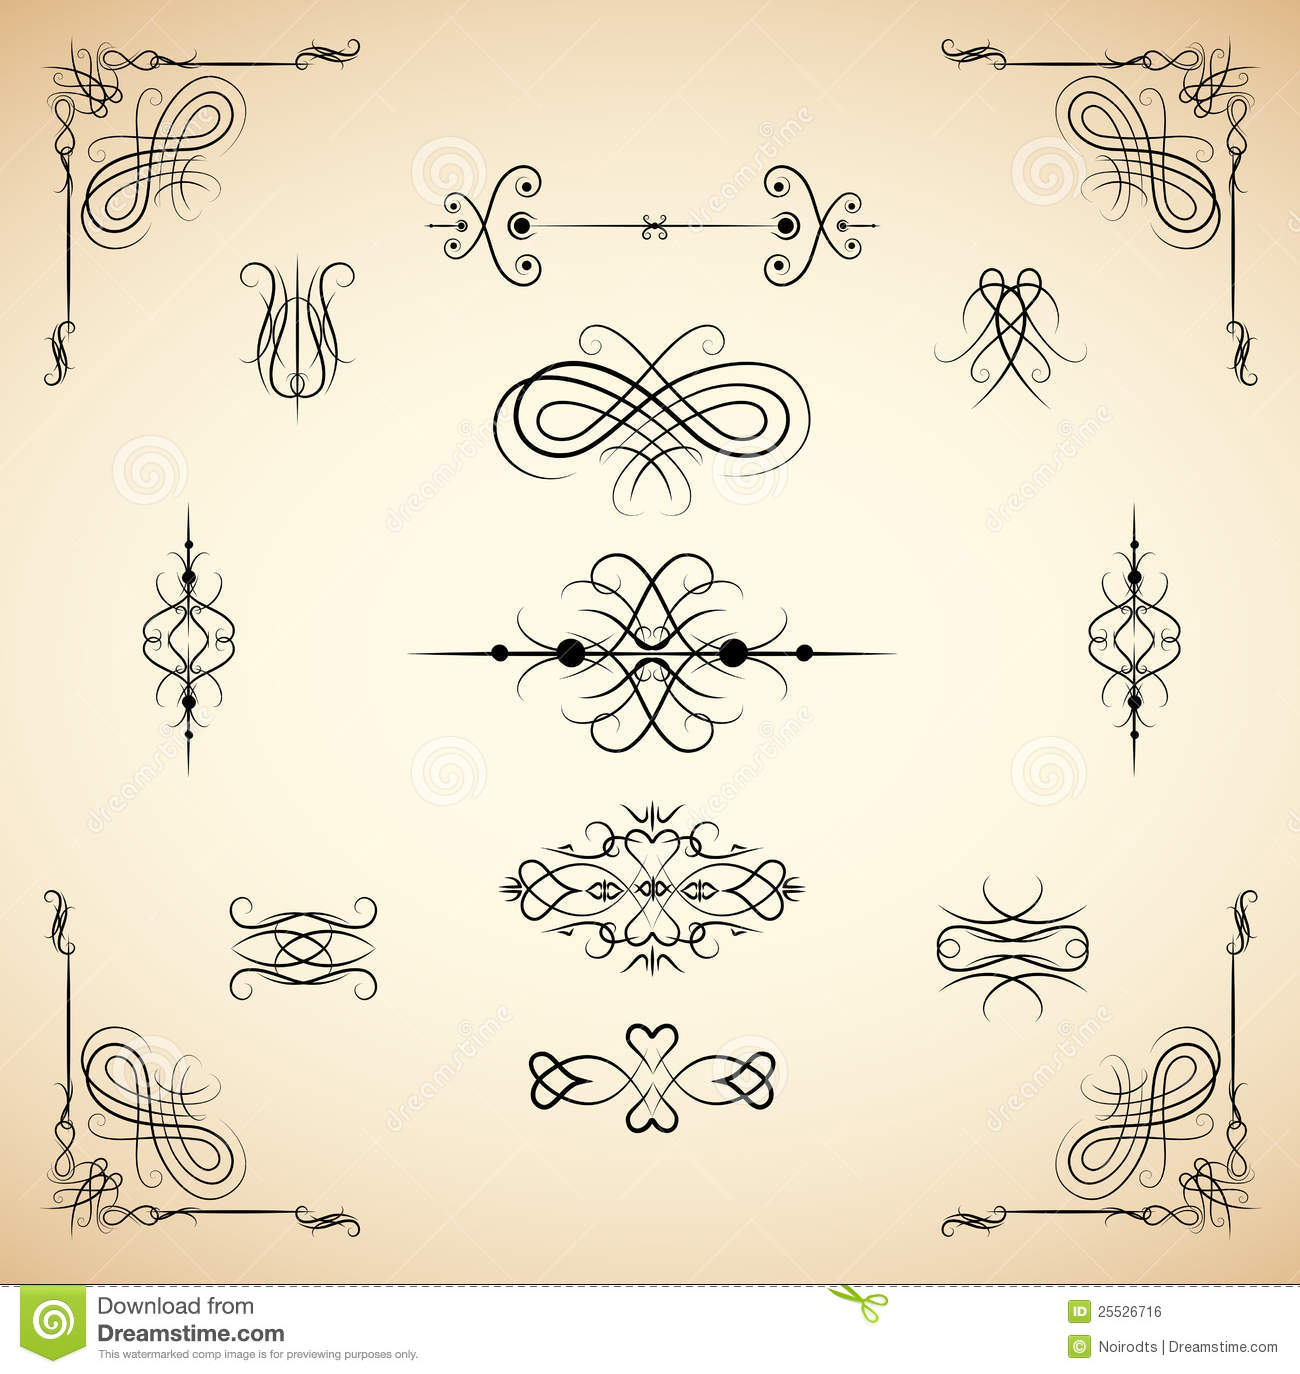 Vintage Design Vintage Design Element Set Stock Vector Illustration Of